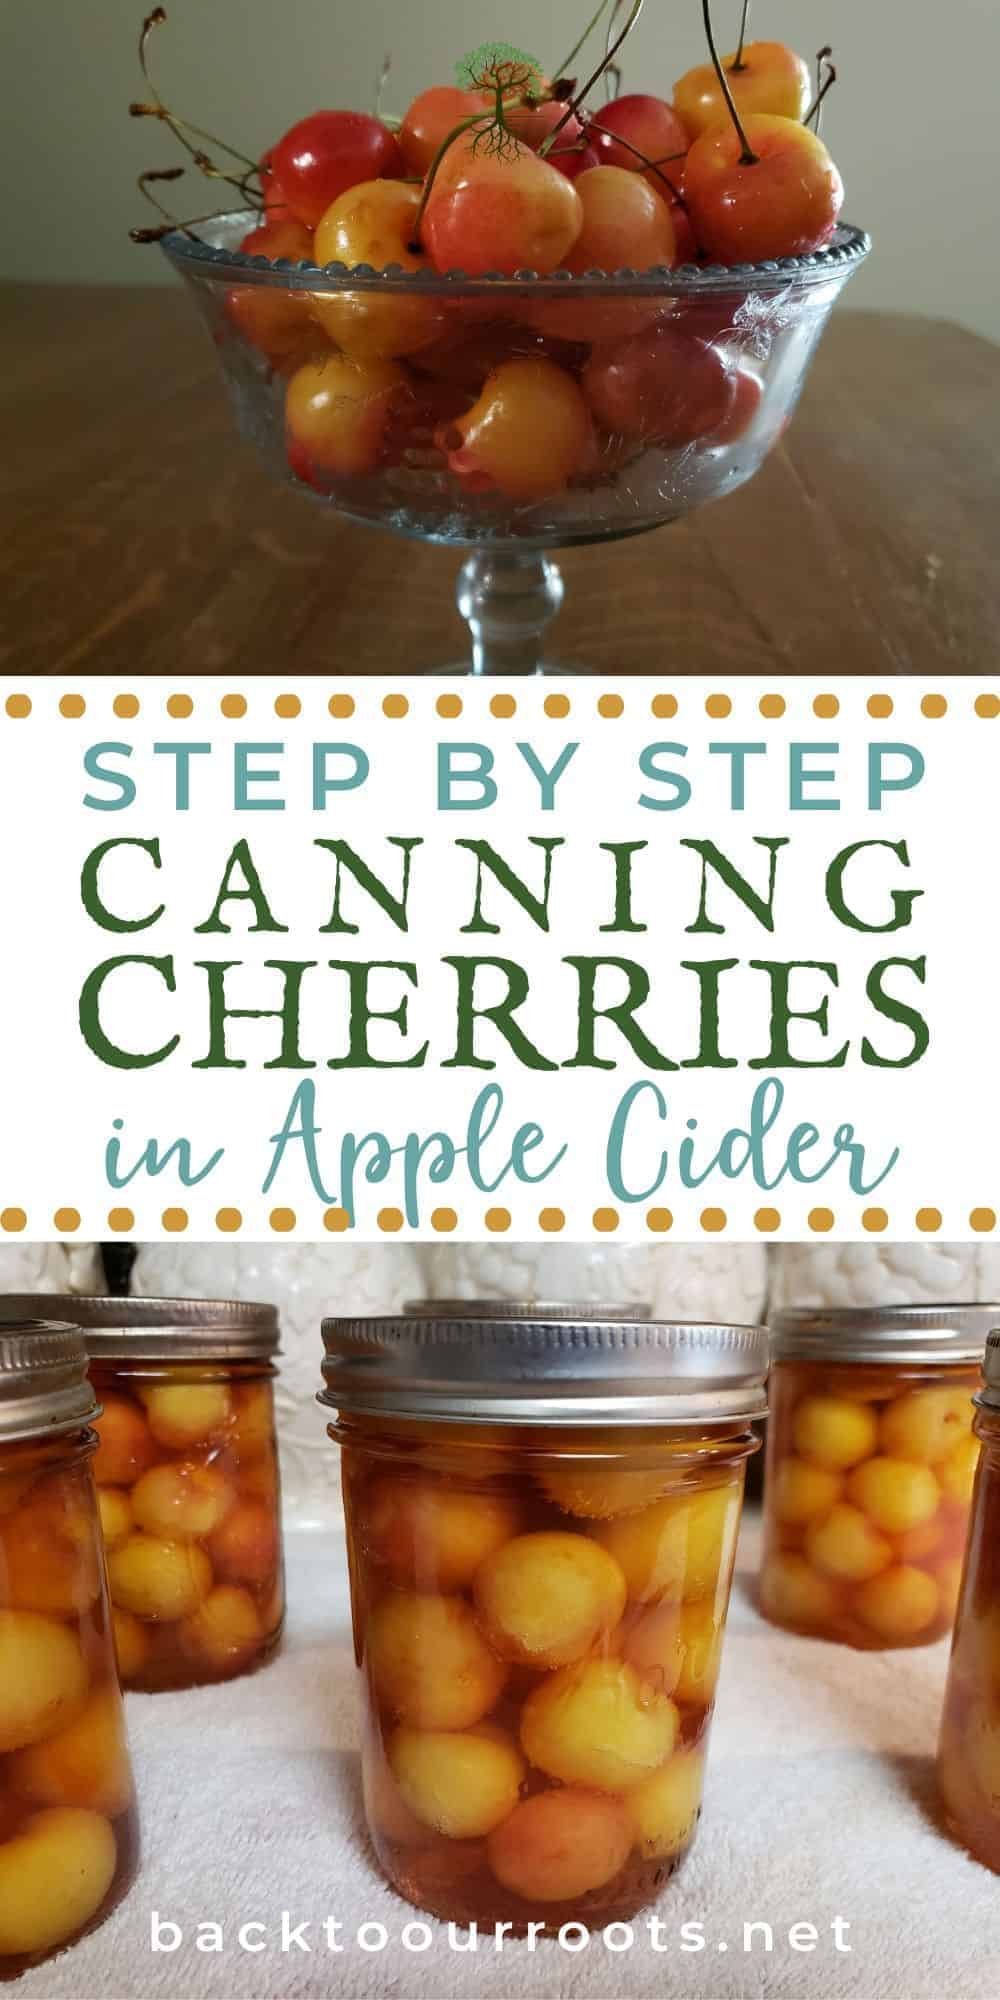 Canning Cherries on Apple Cider